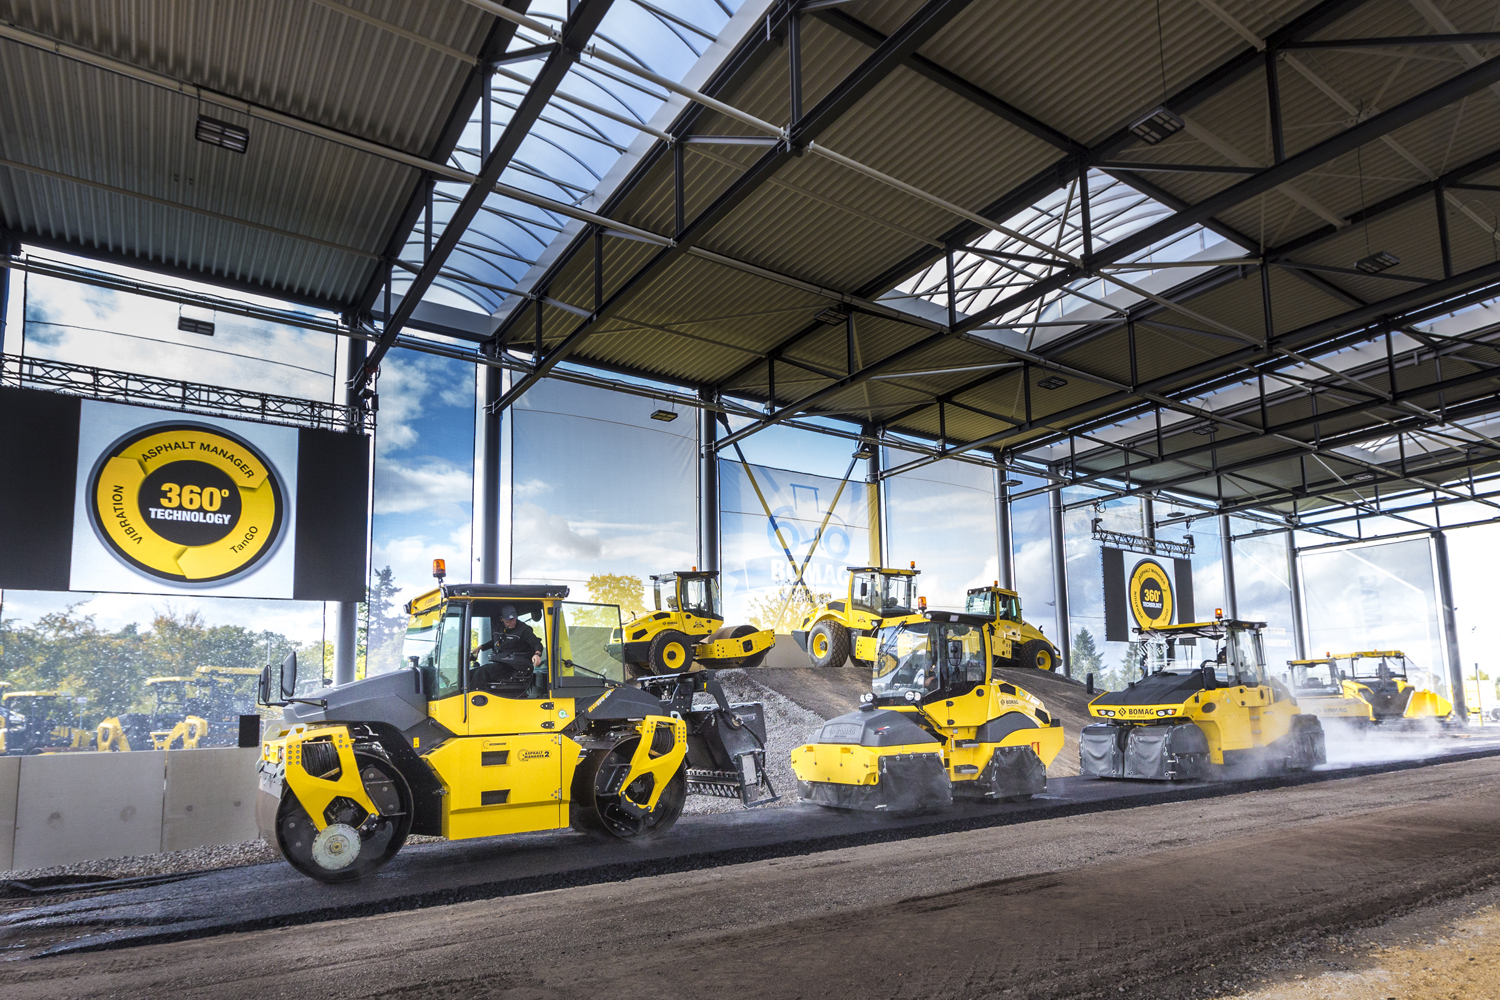 Bomag Innovation Days 2017